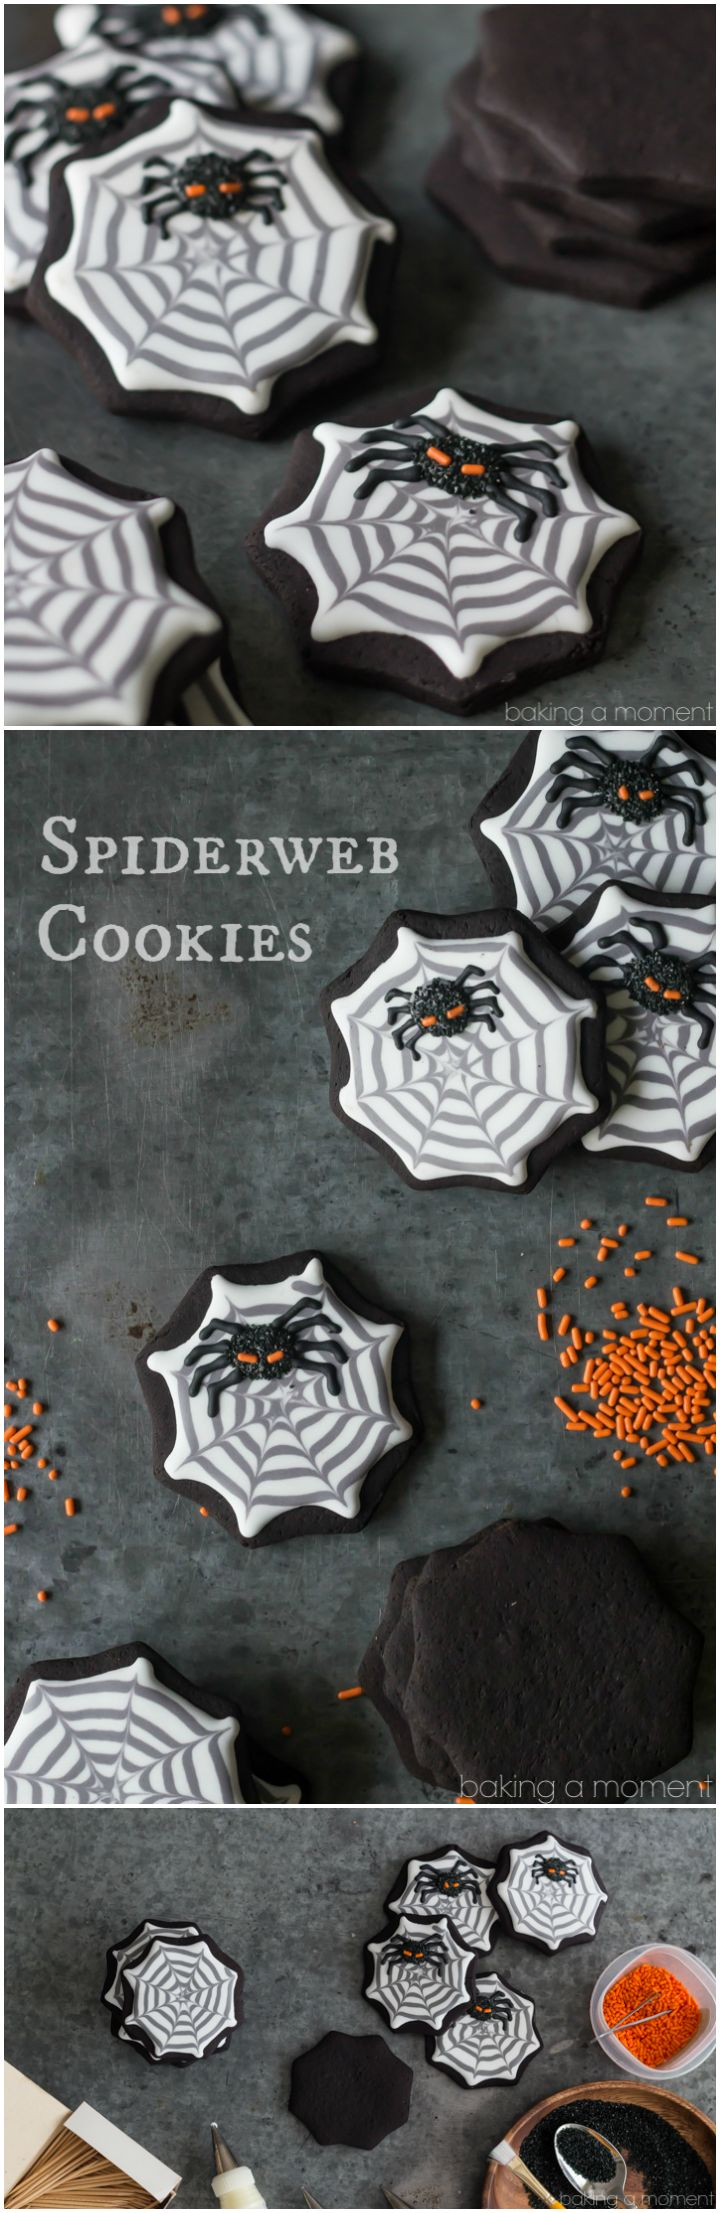 How To Make Spiderweb Cookies With Royal Icing  These Were Pretty Easy And  Kindau2026